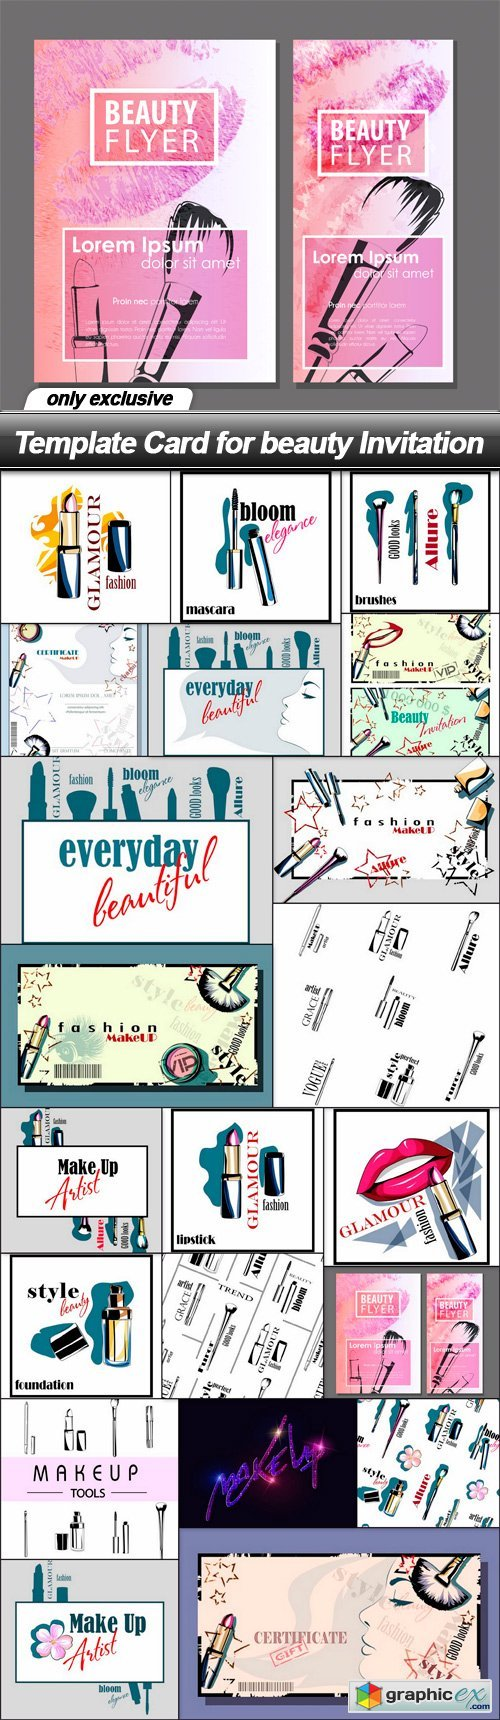 Template Card for beauty Invitation - 21 EPS